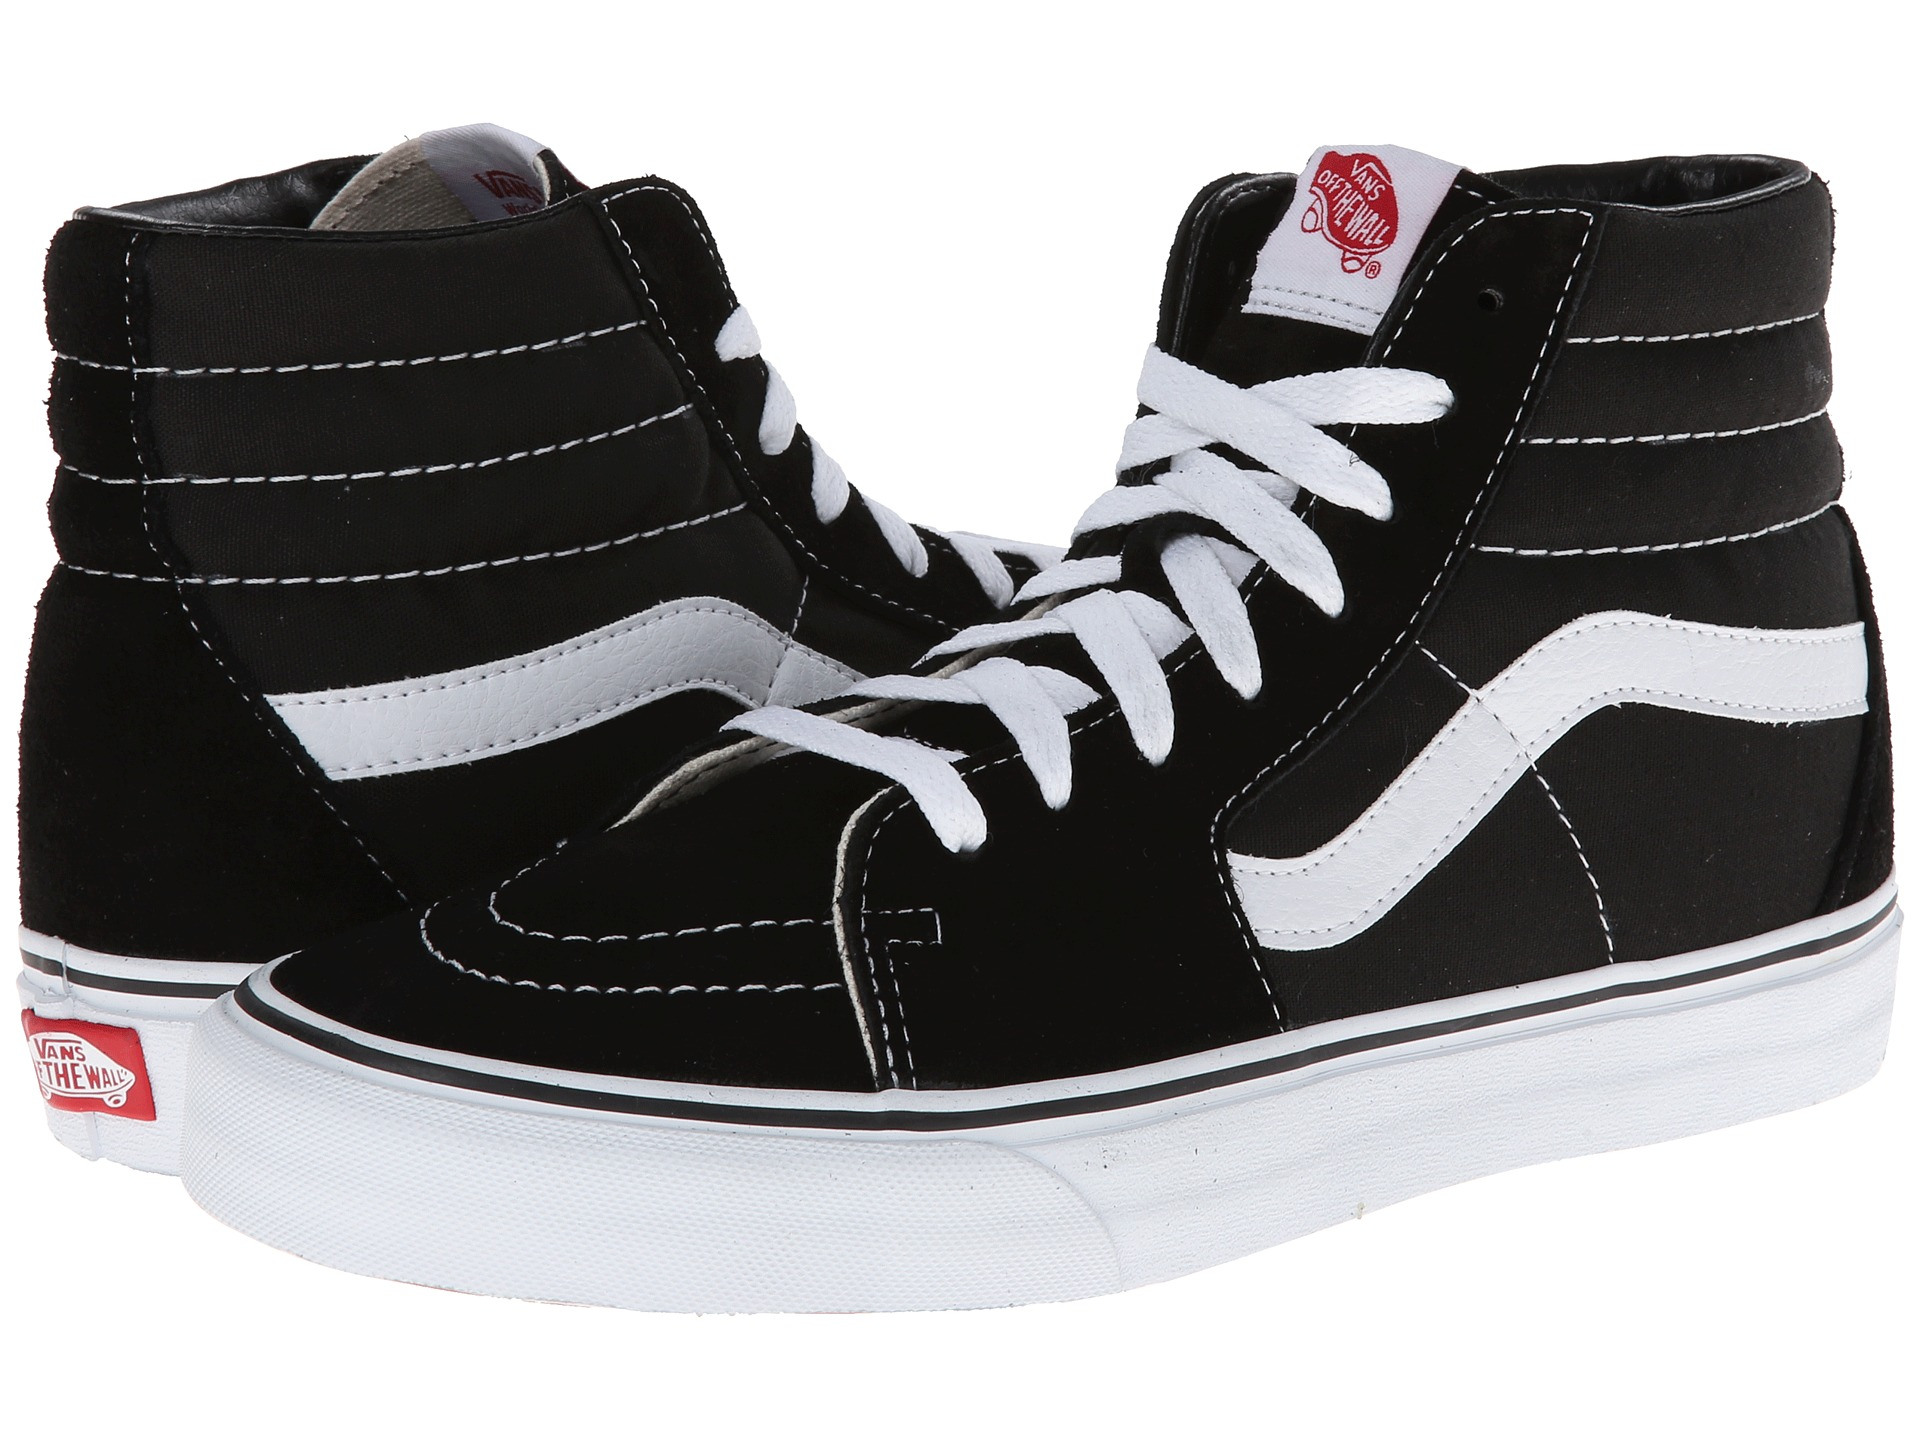 Free-Desktop-Shoes-Vans-Wallpaper-HD